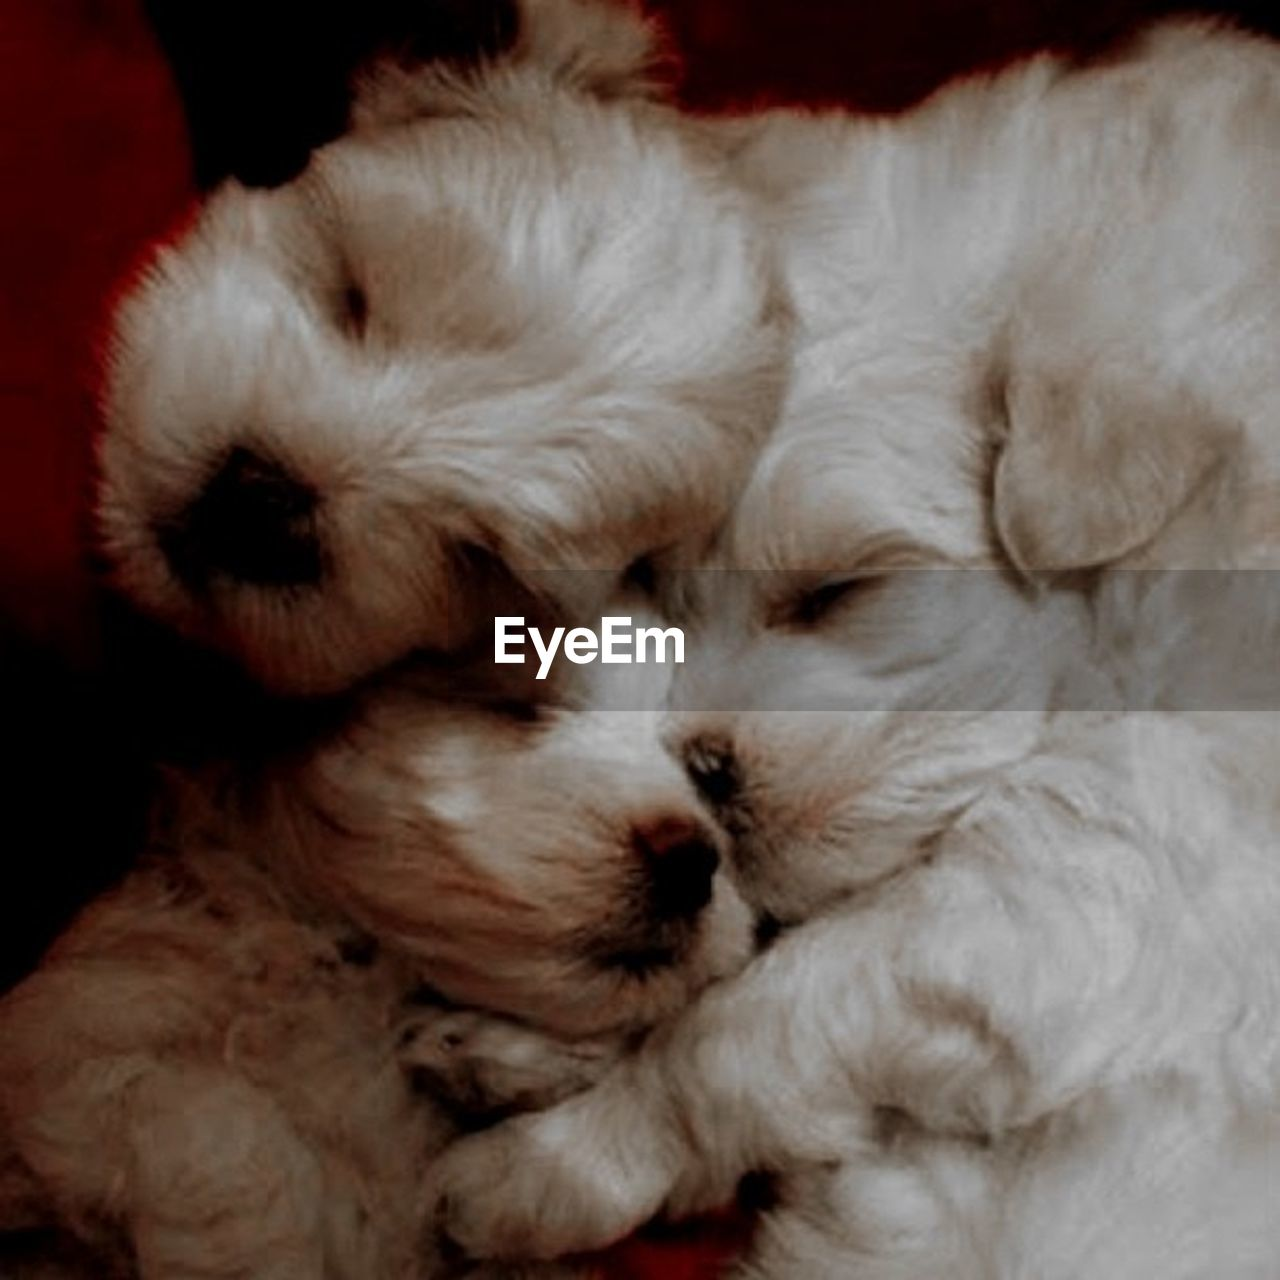 pets, domestic animals, animal themes, sleeping, animal hair, eyes closed, one animal, cute, indoors, no people, domestic cat, dog, lying down, close-up, mammal, day, persian cat